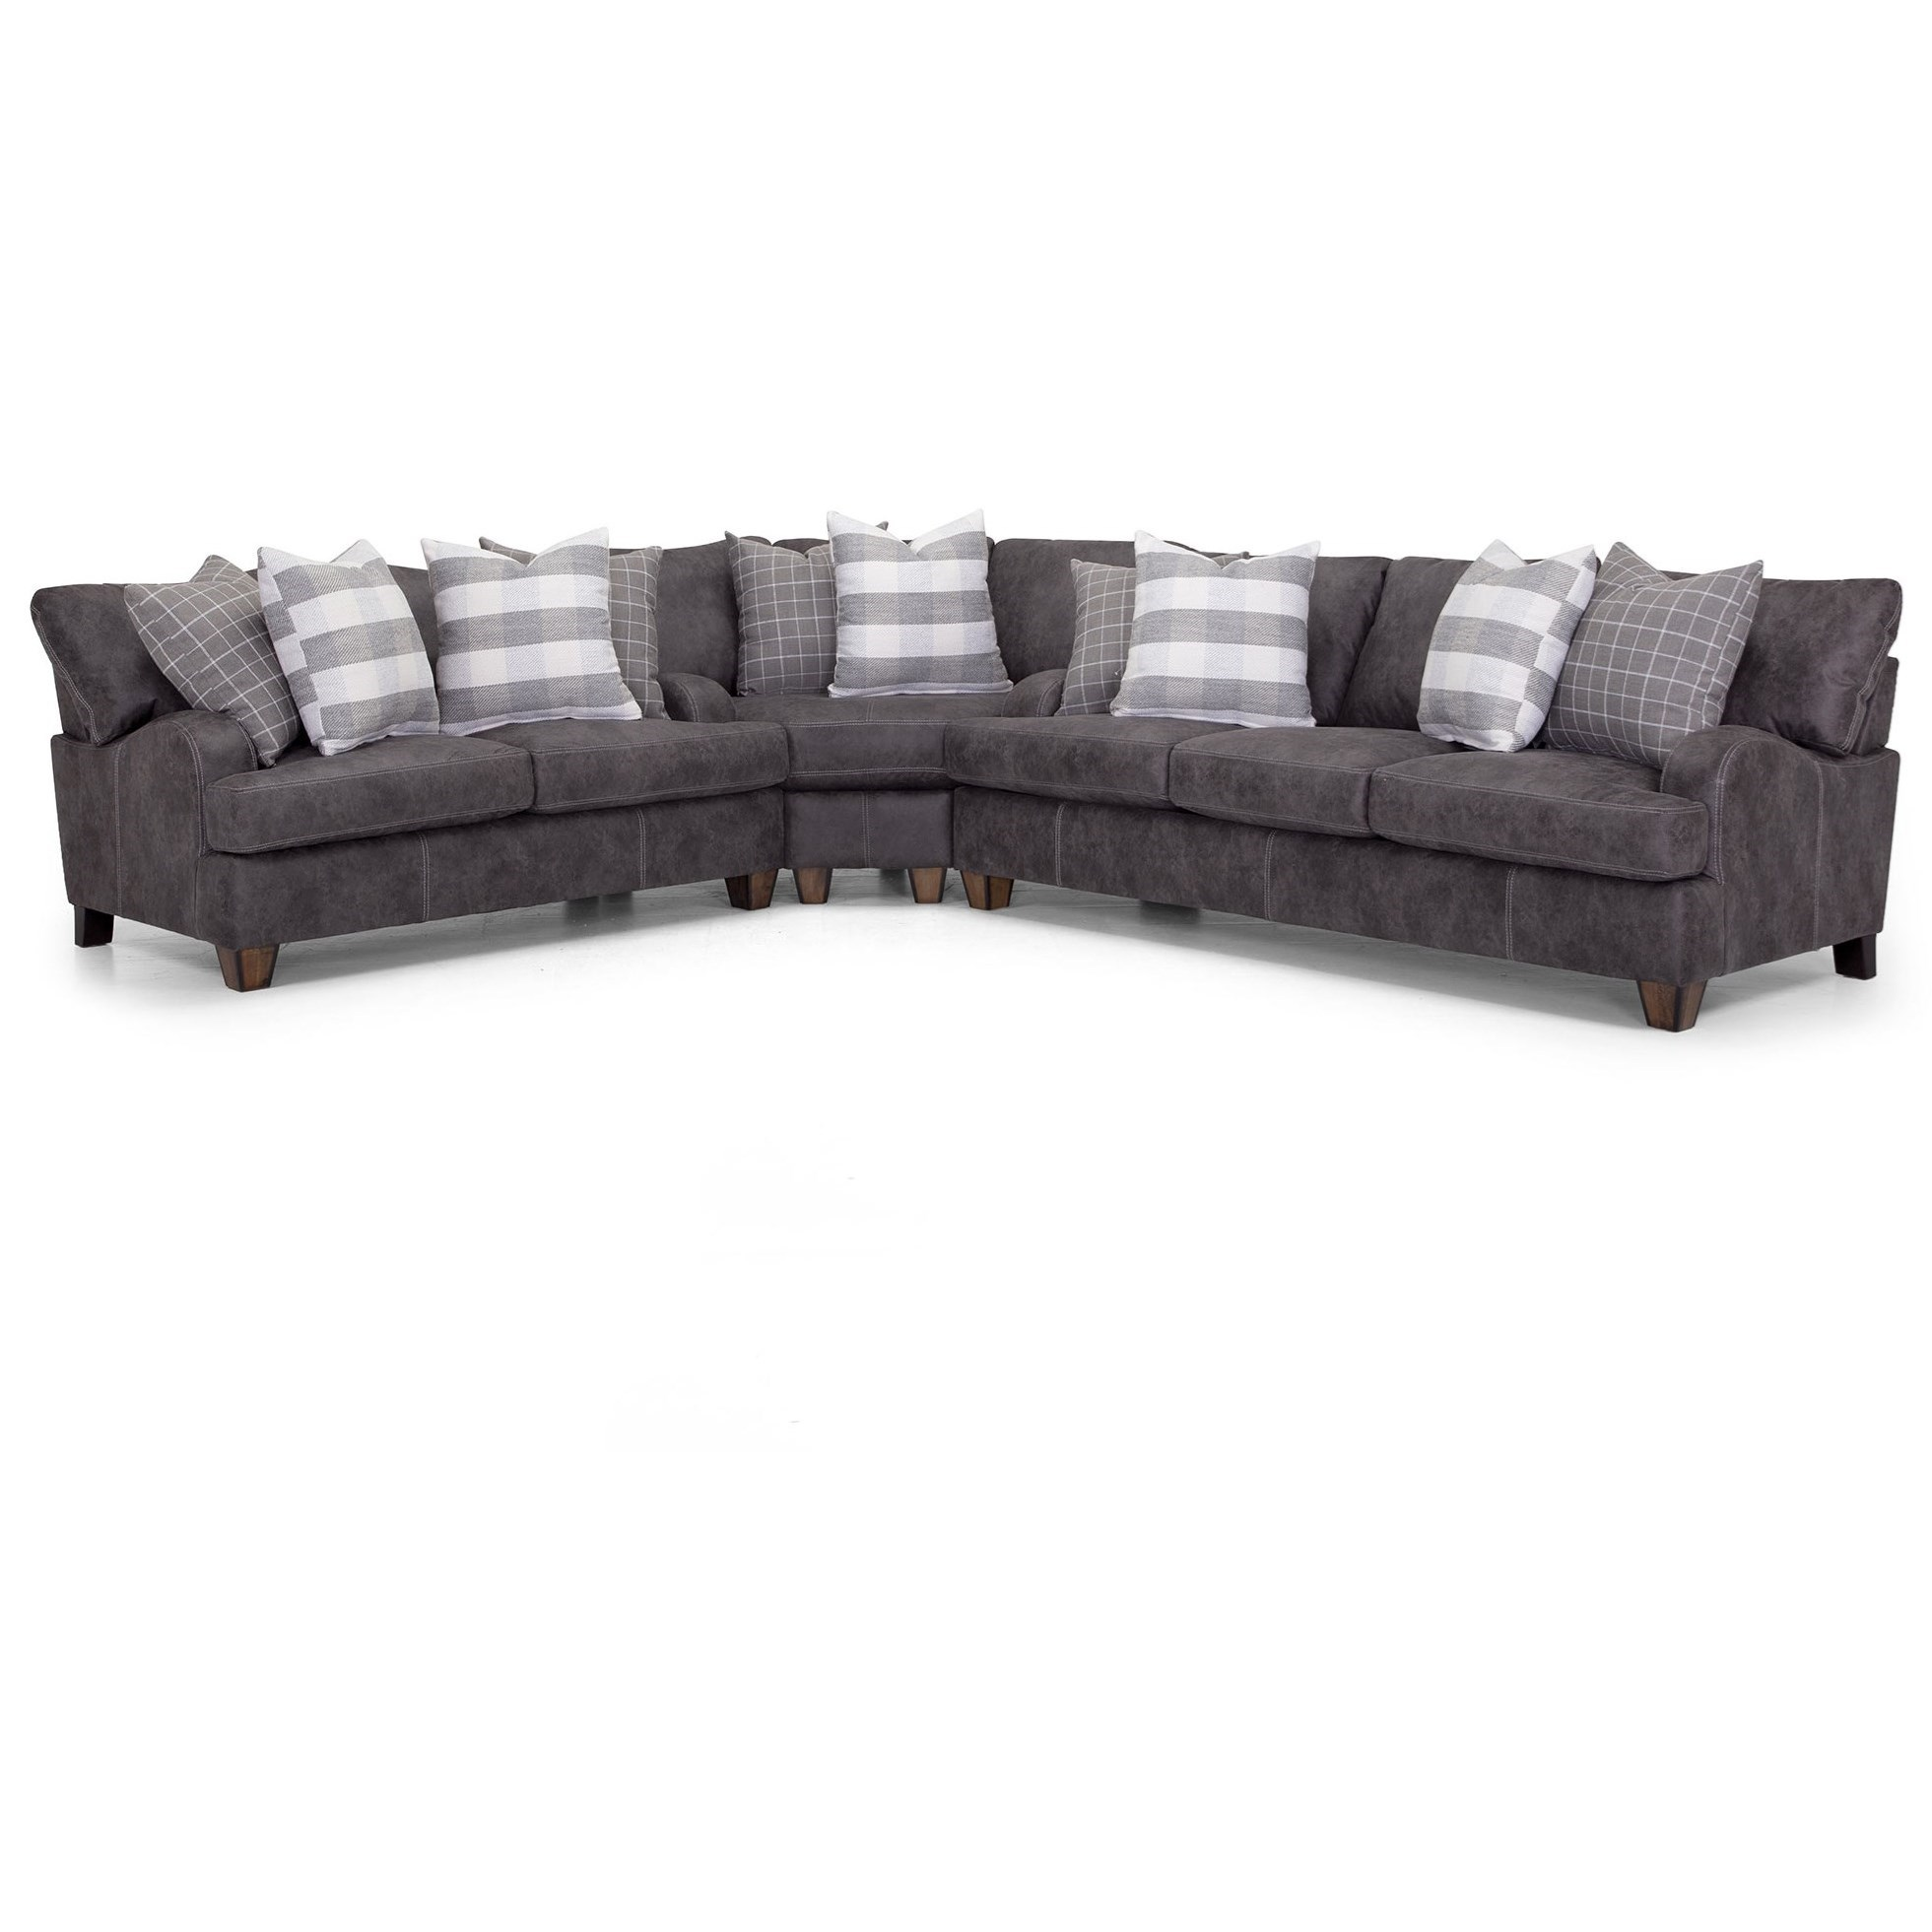 993 Sectional by Franklin at Wilcox Furniture